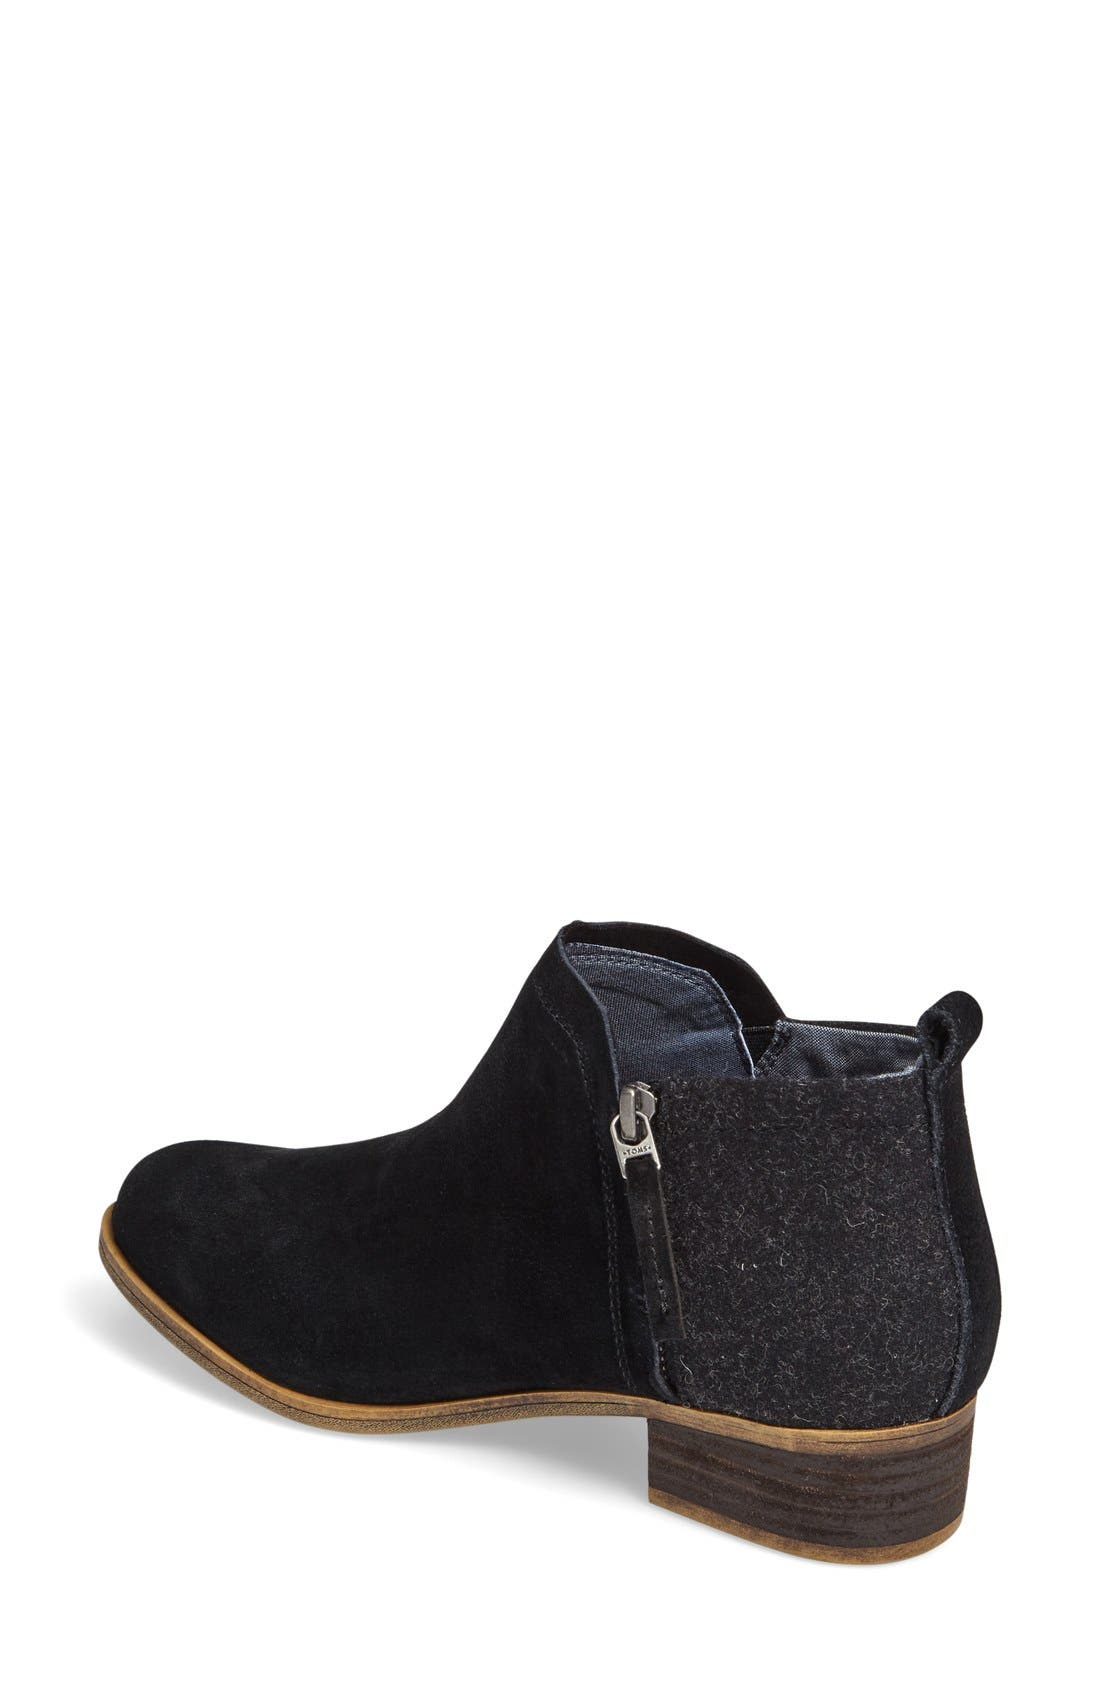 Deia Zip Bootie,                             Alternate thumbnail 20, color,